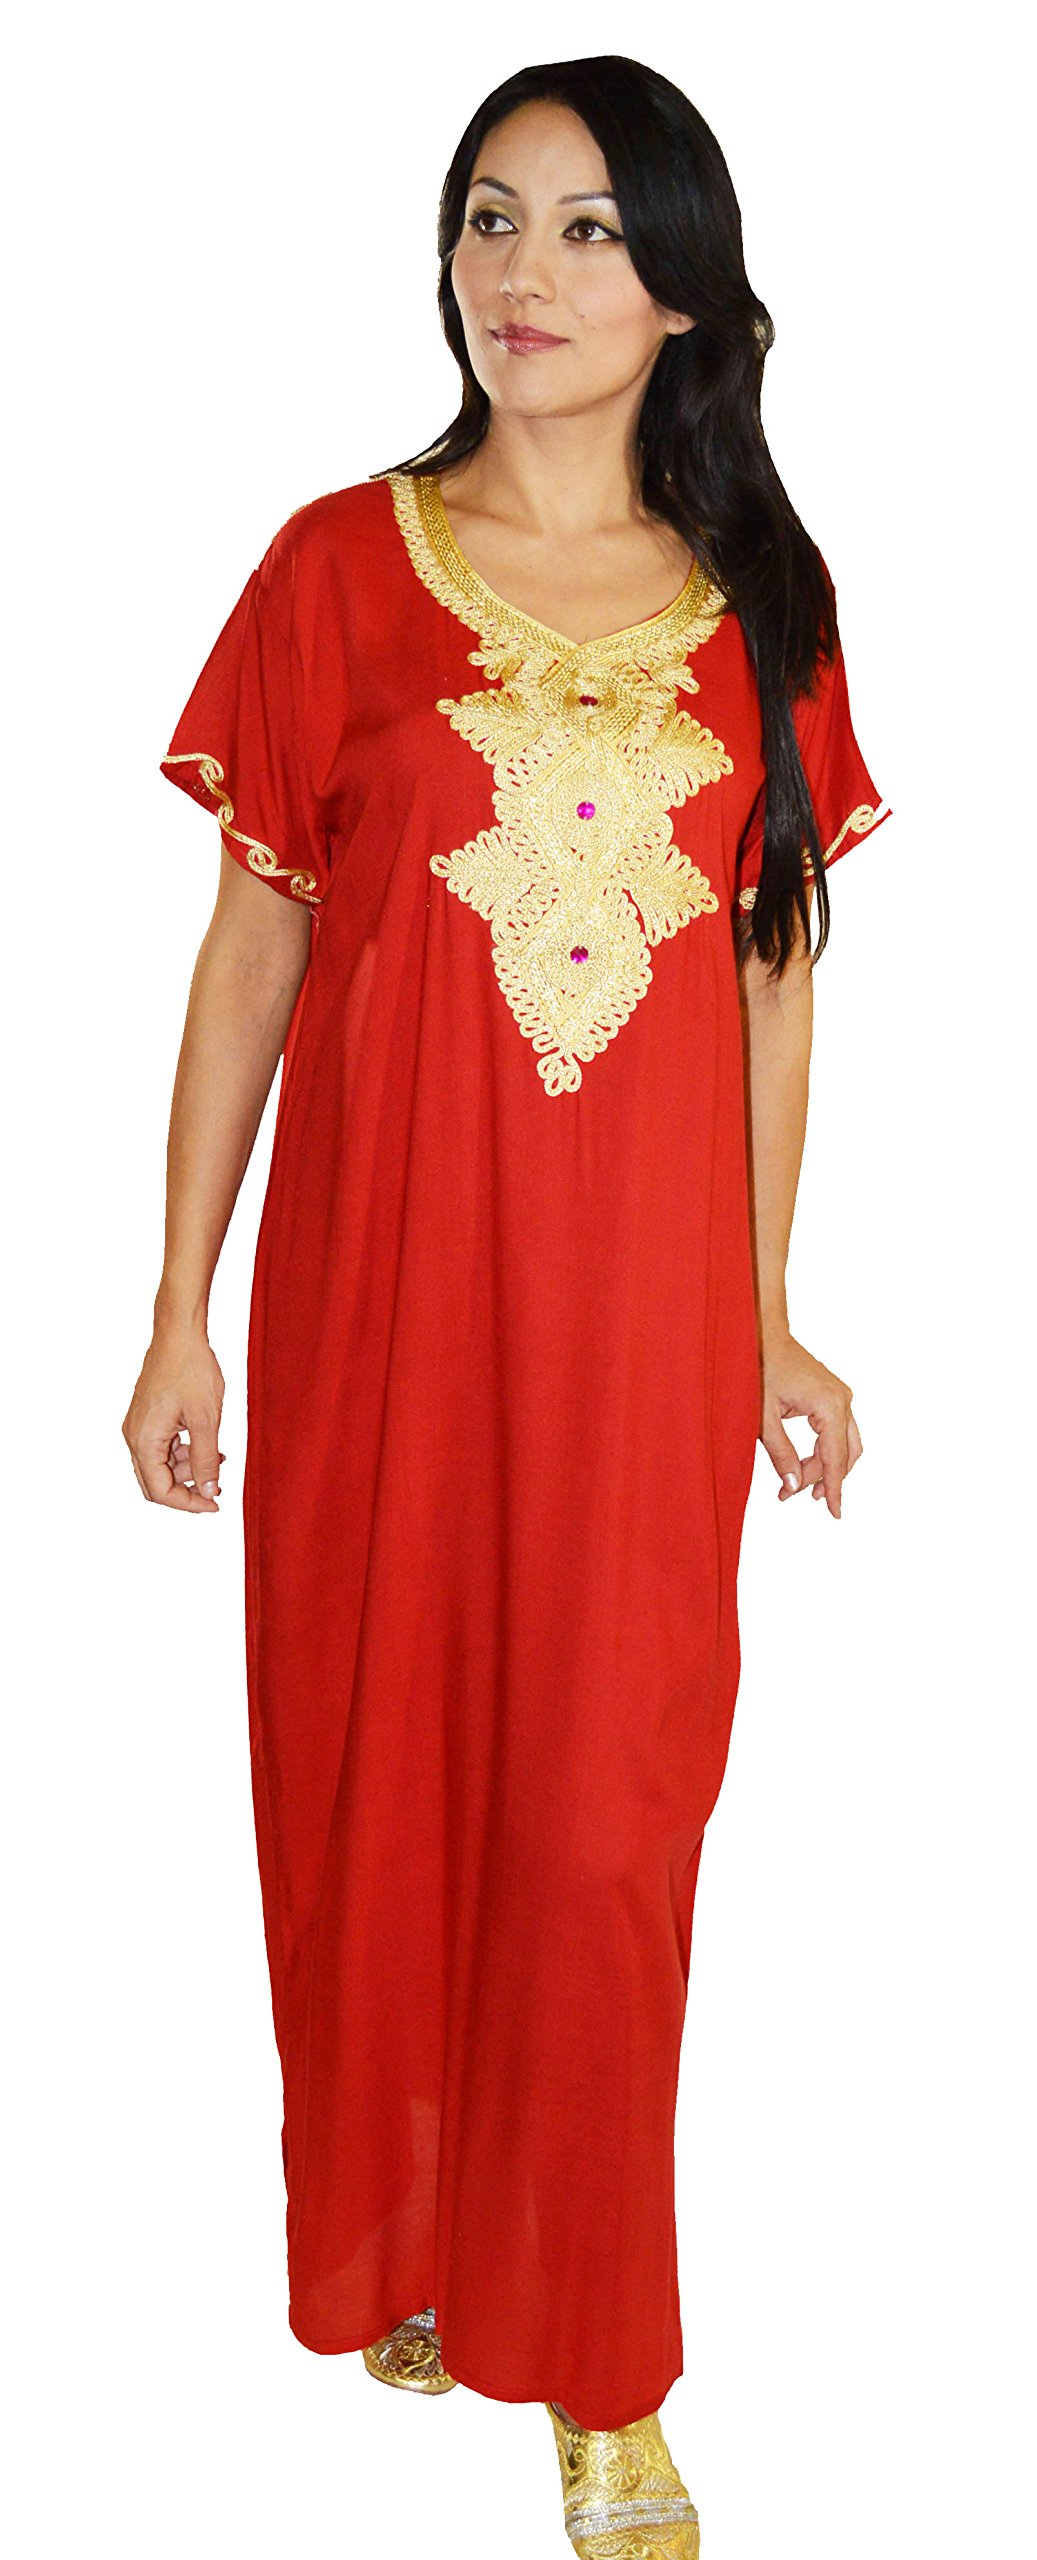 Moroccan Caftans Handmade Light Weight Cotton Hand Embroidery Andalusia Fits Small to Medium Red by Moroccan Caftans (Image #1)